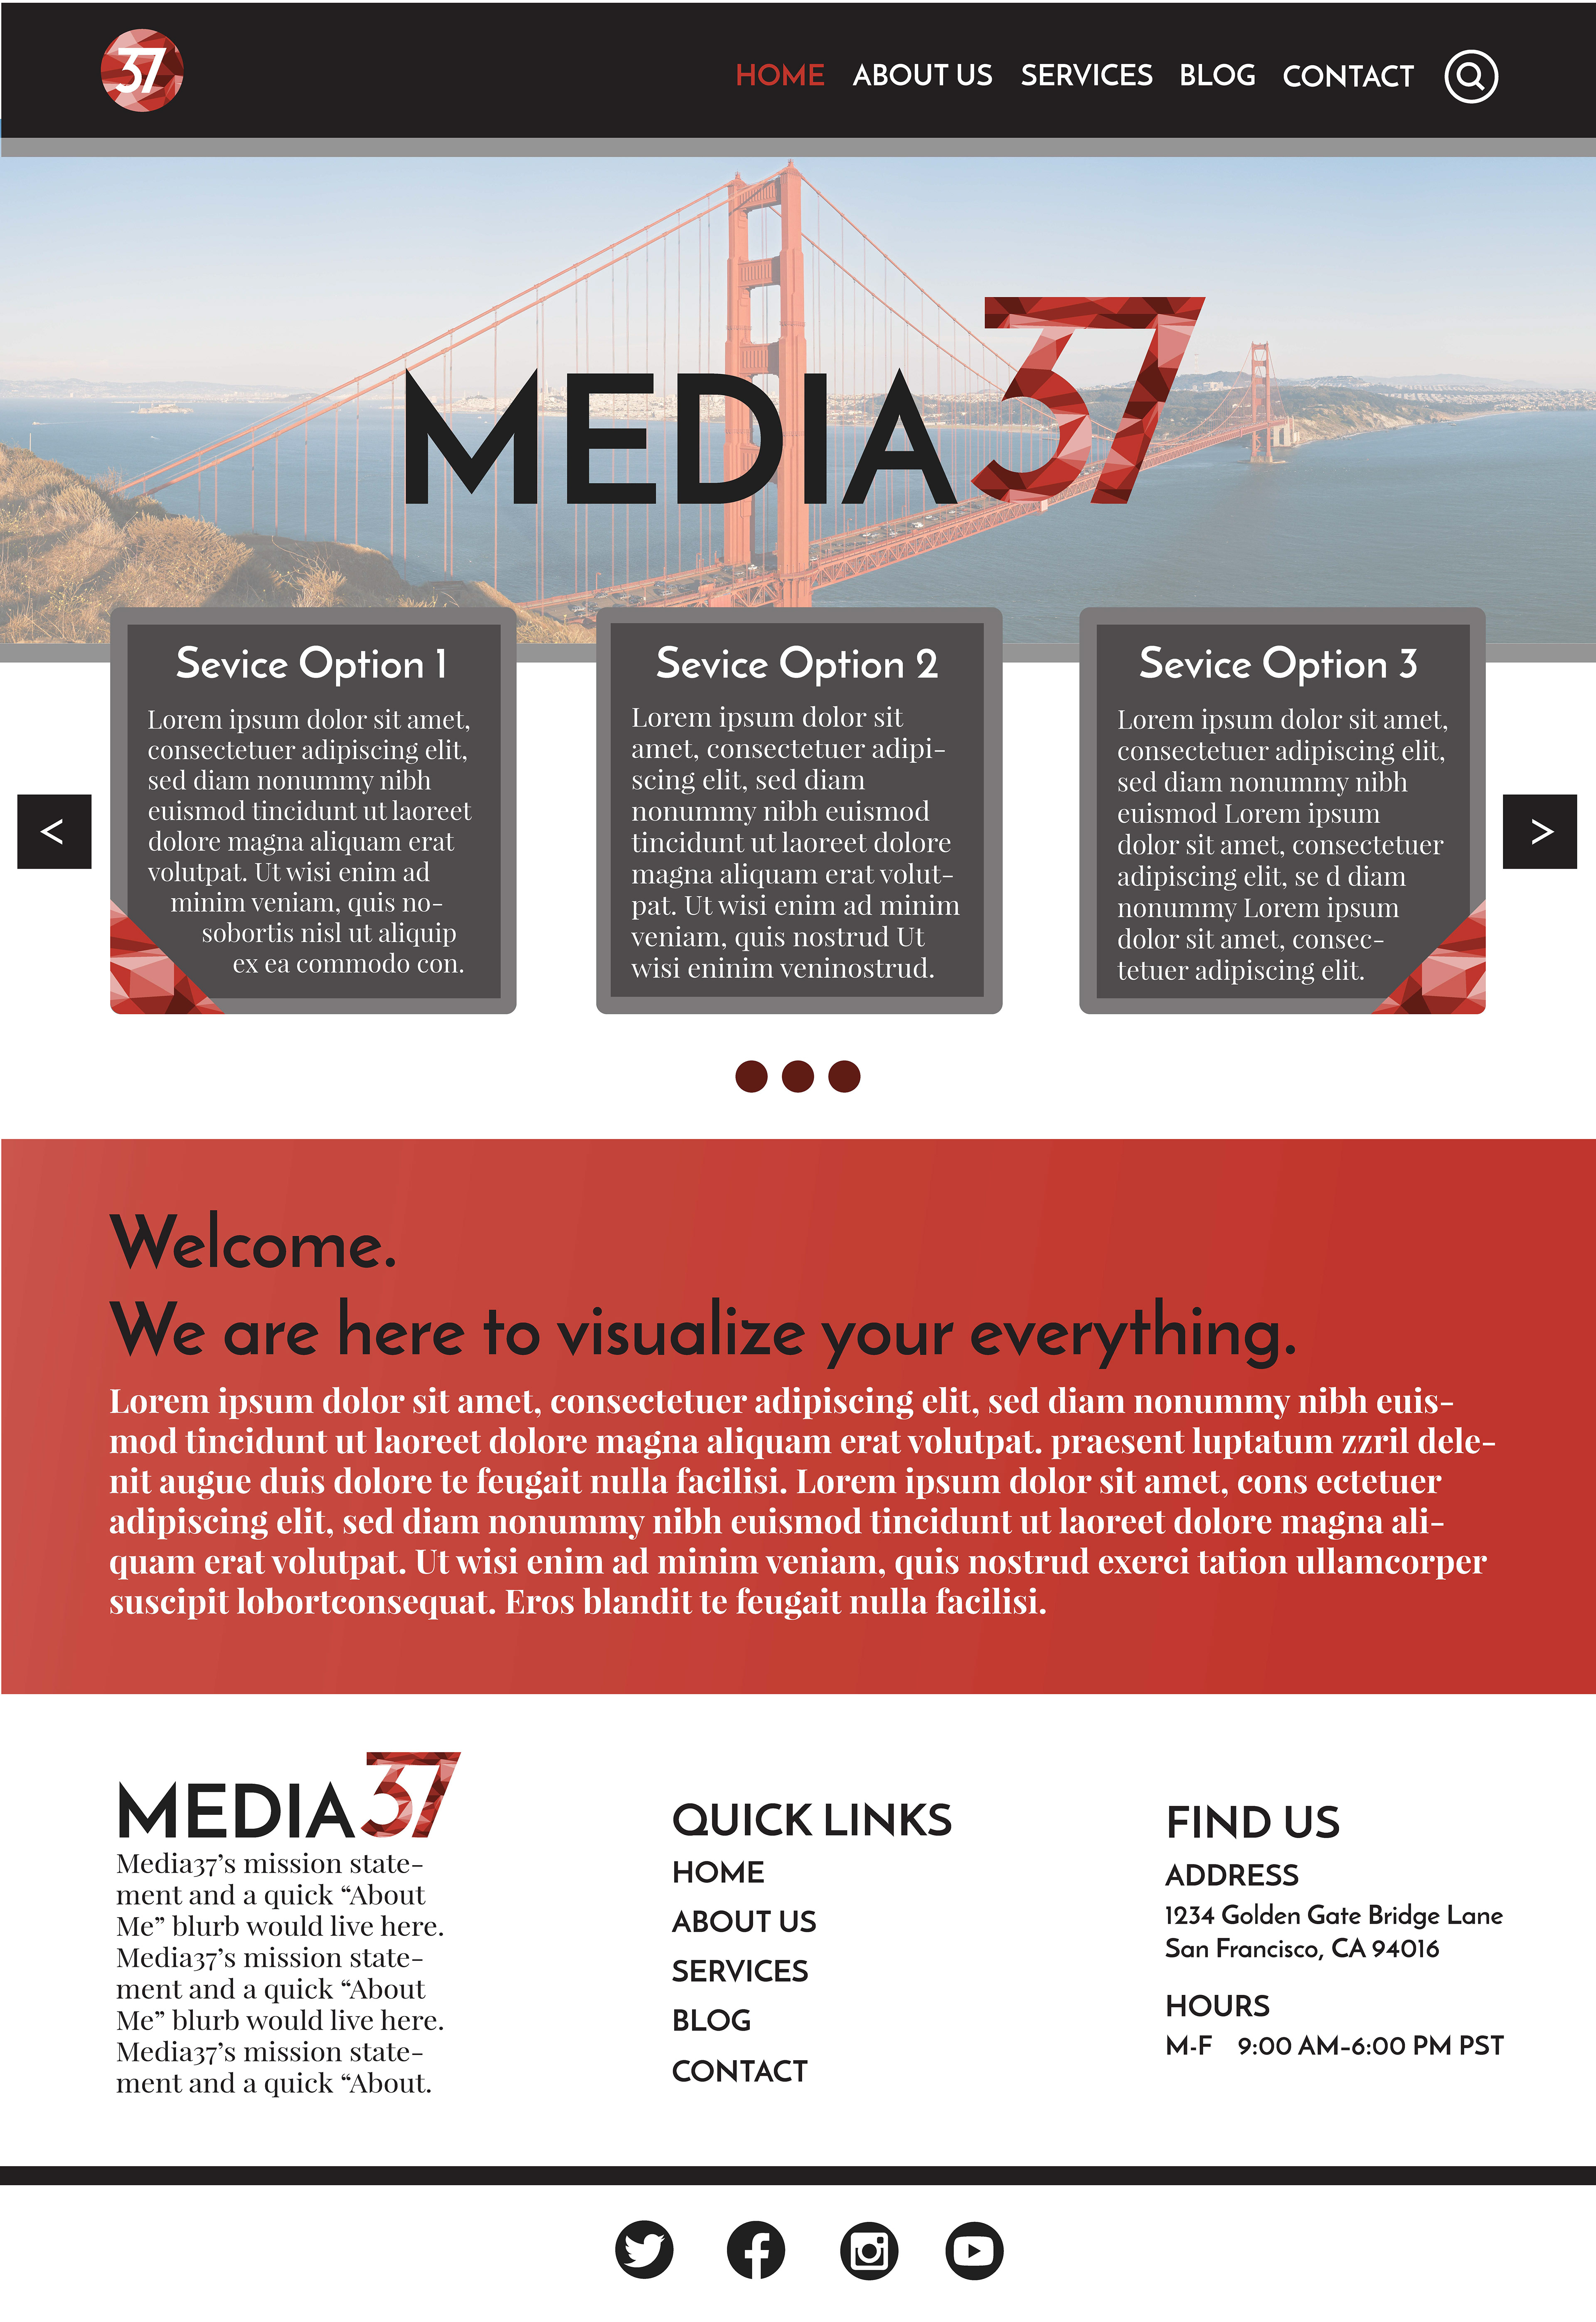 Megan kessler final project for fall 2017 course requirements business name logo design business card design letterhead design website homepage design favicon style guide and a summary of design reheart Image collections